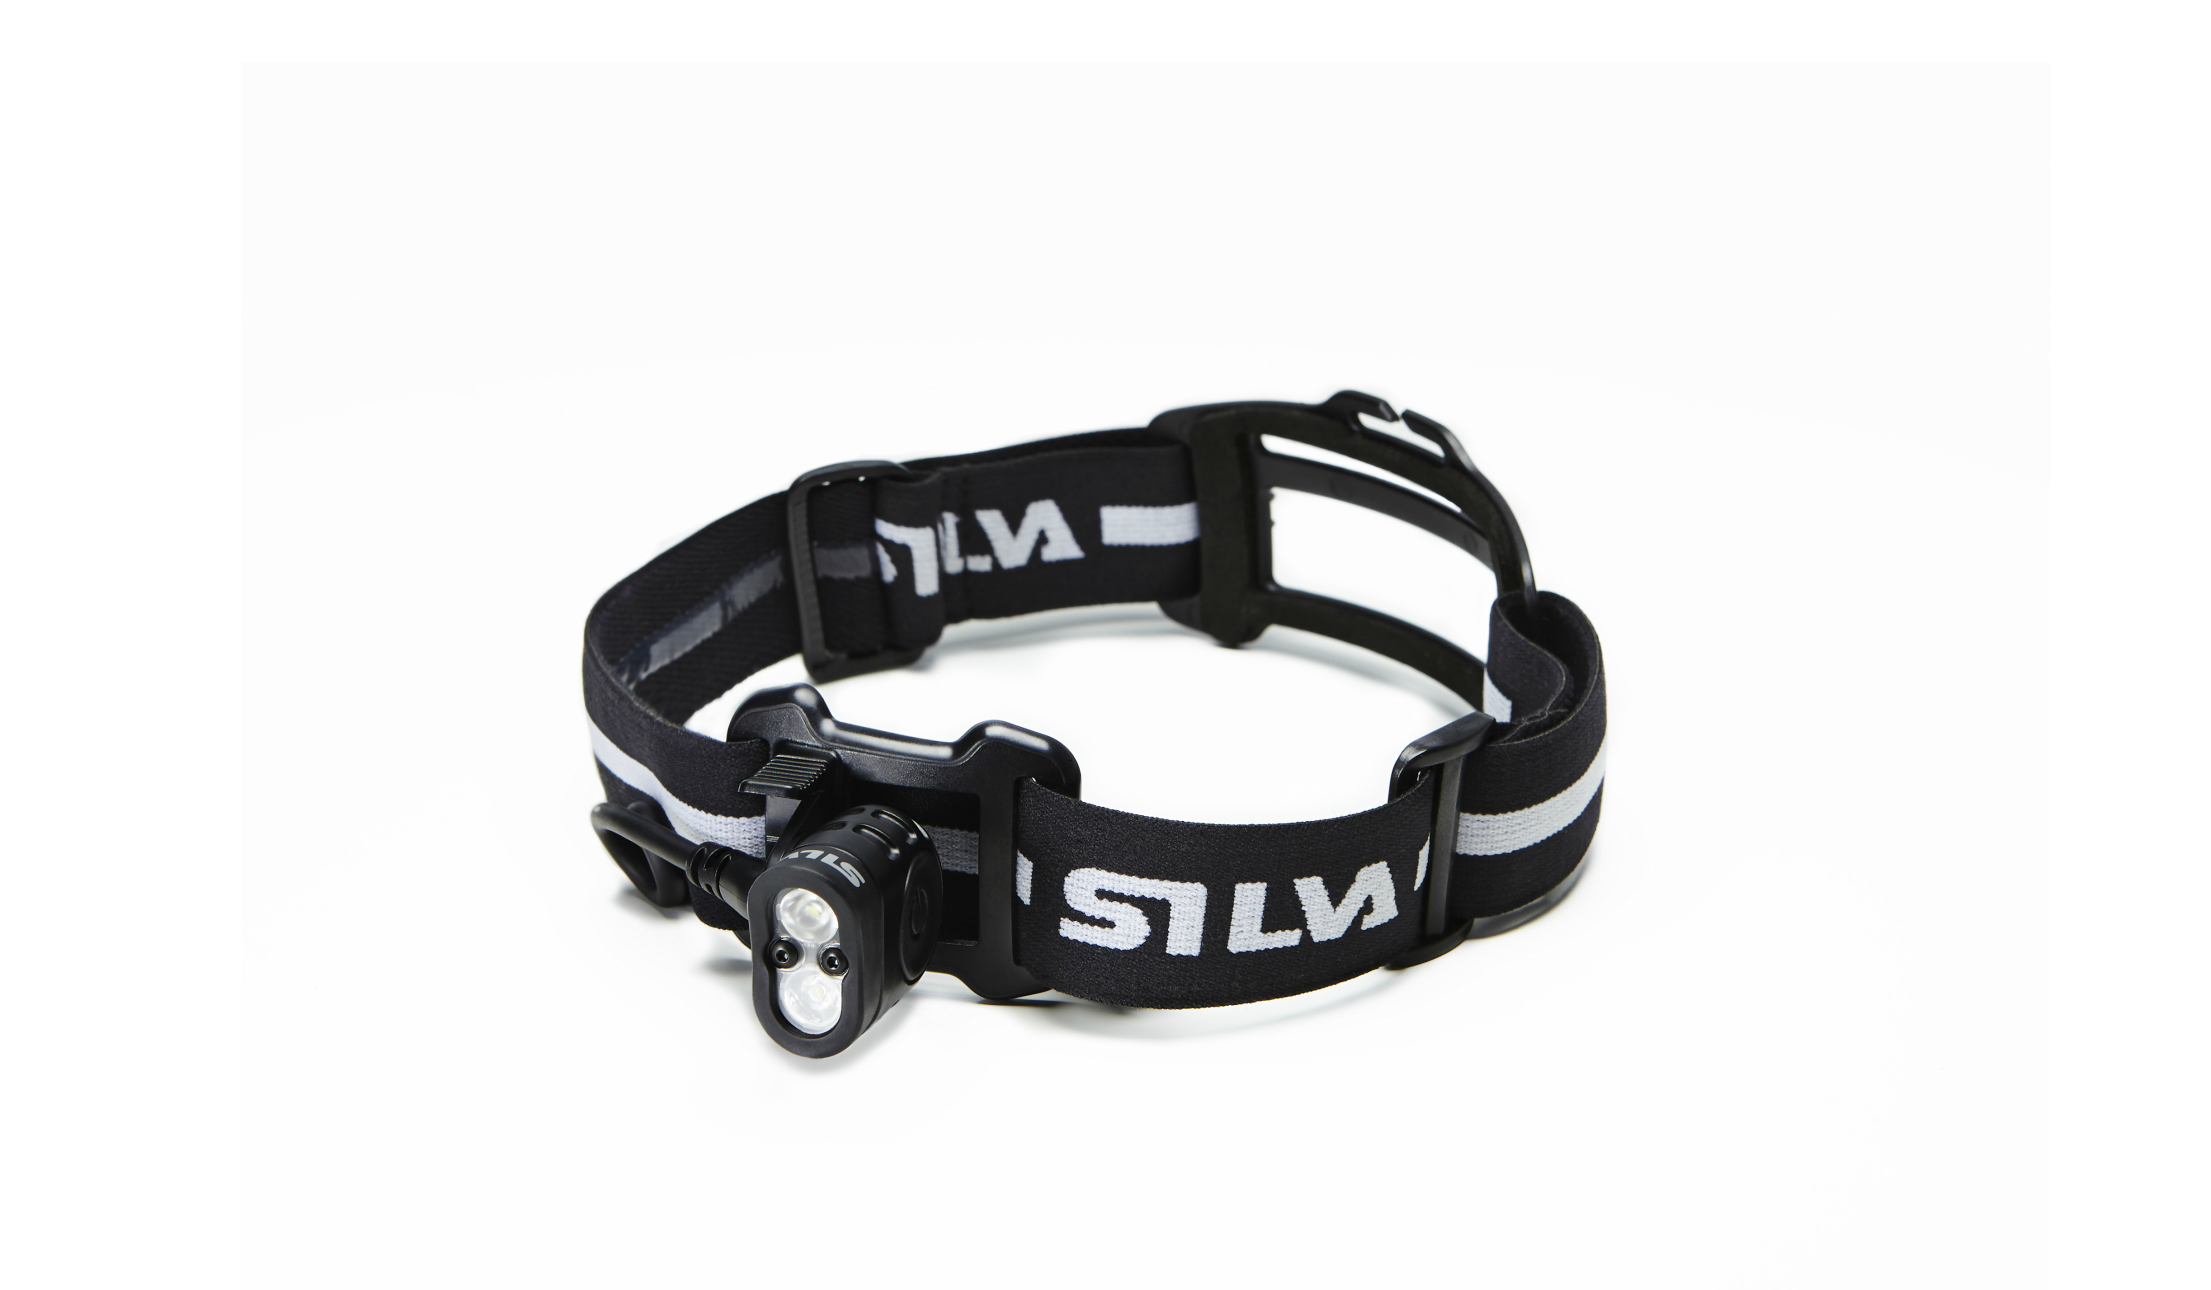 Silva Trail Speed 2XT